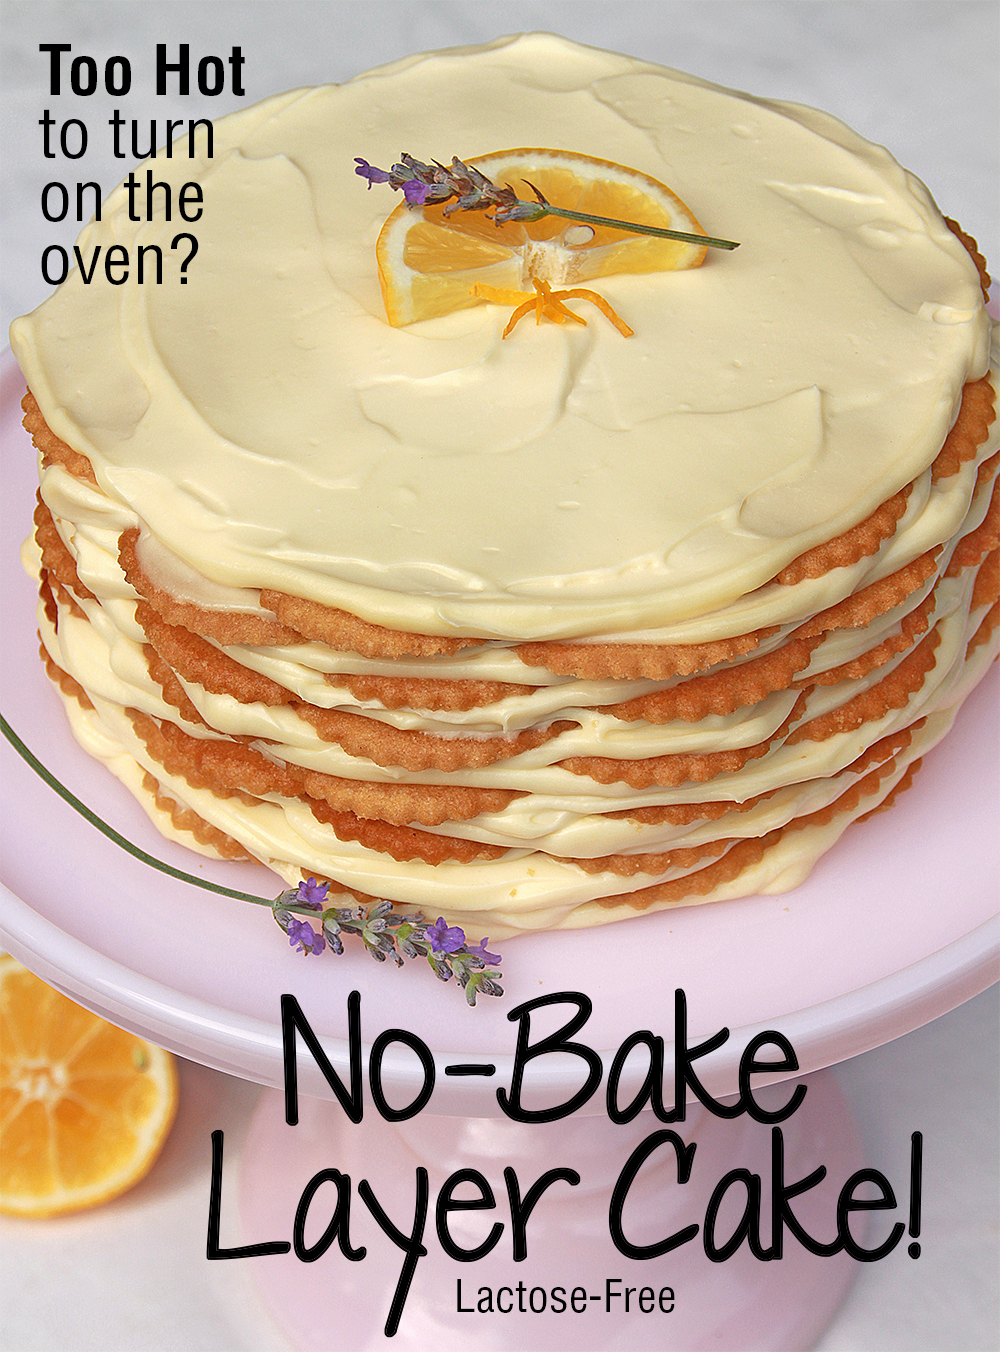 Newsletter August 2015 Layer Cake Image 1